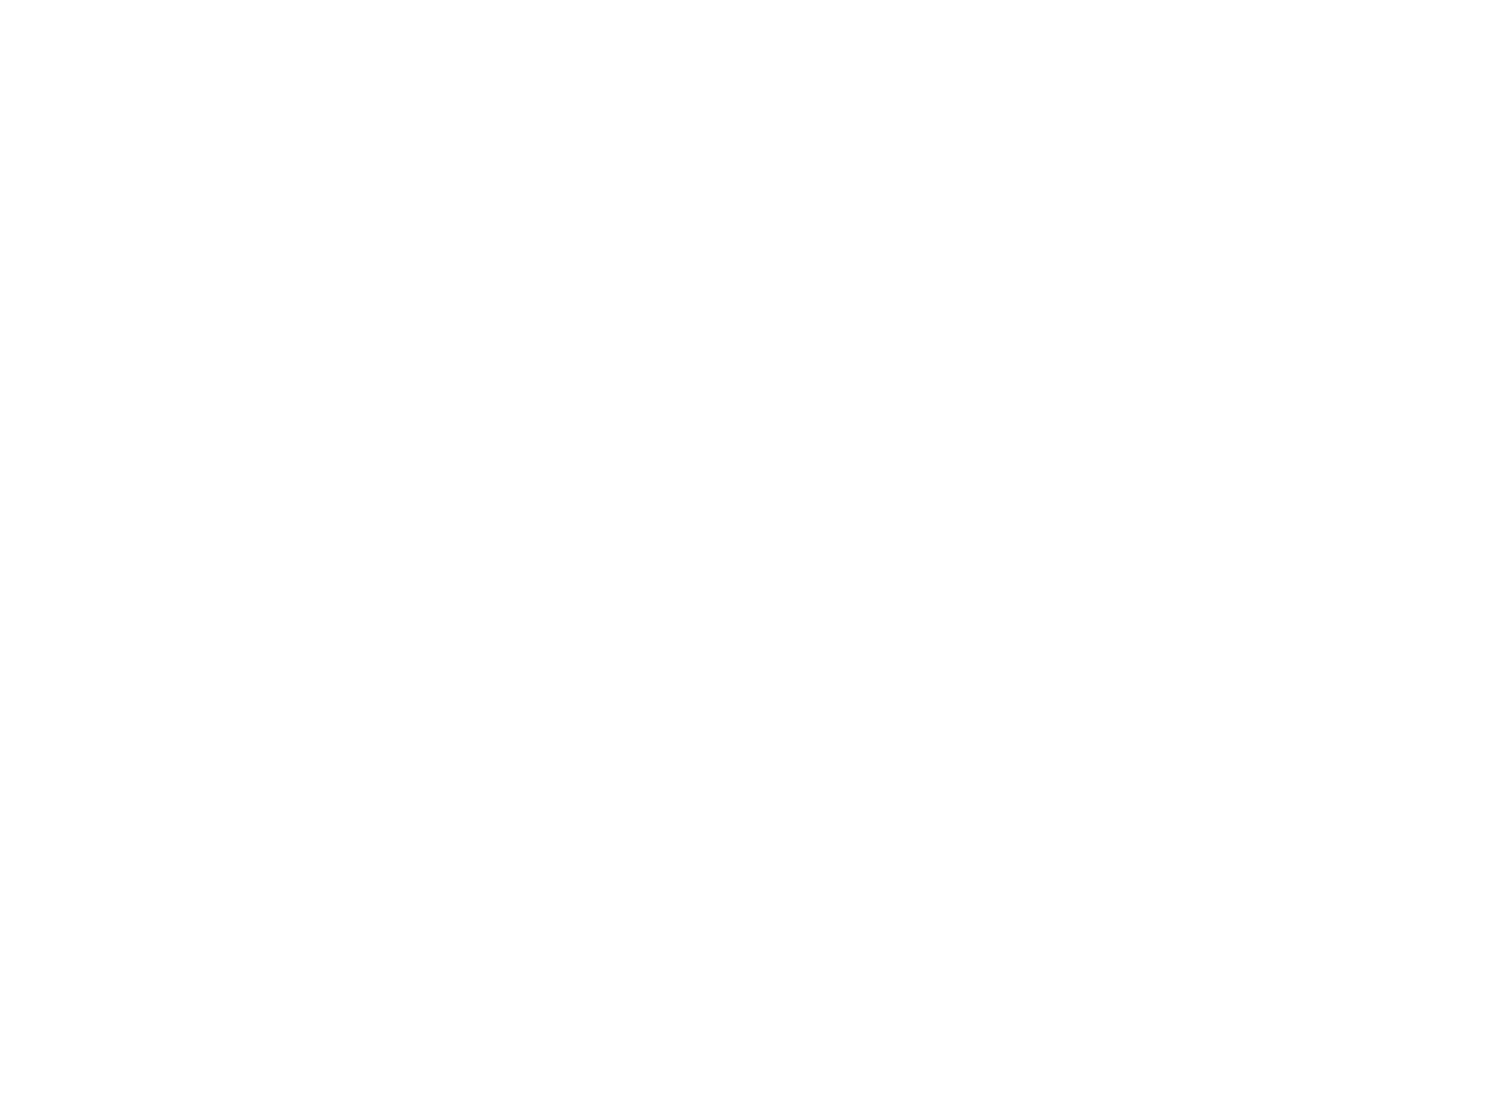 Franklin Resources Group